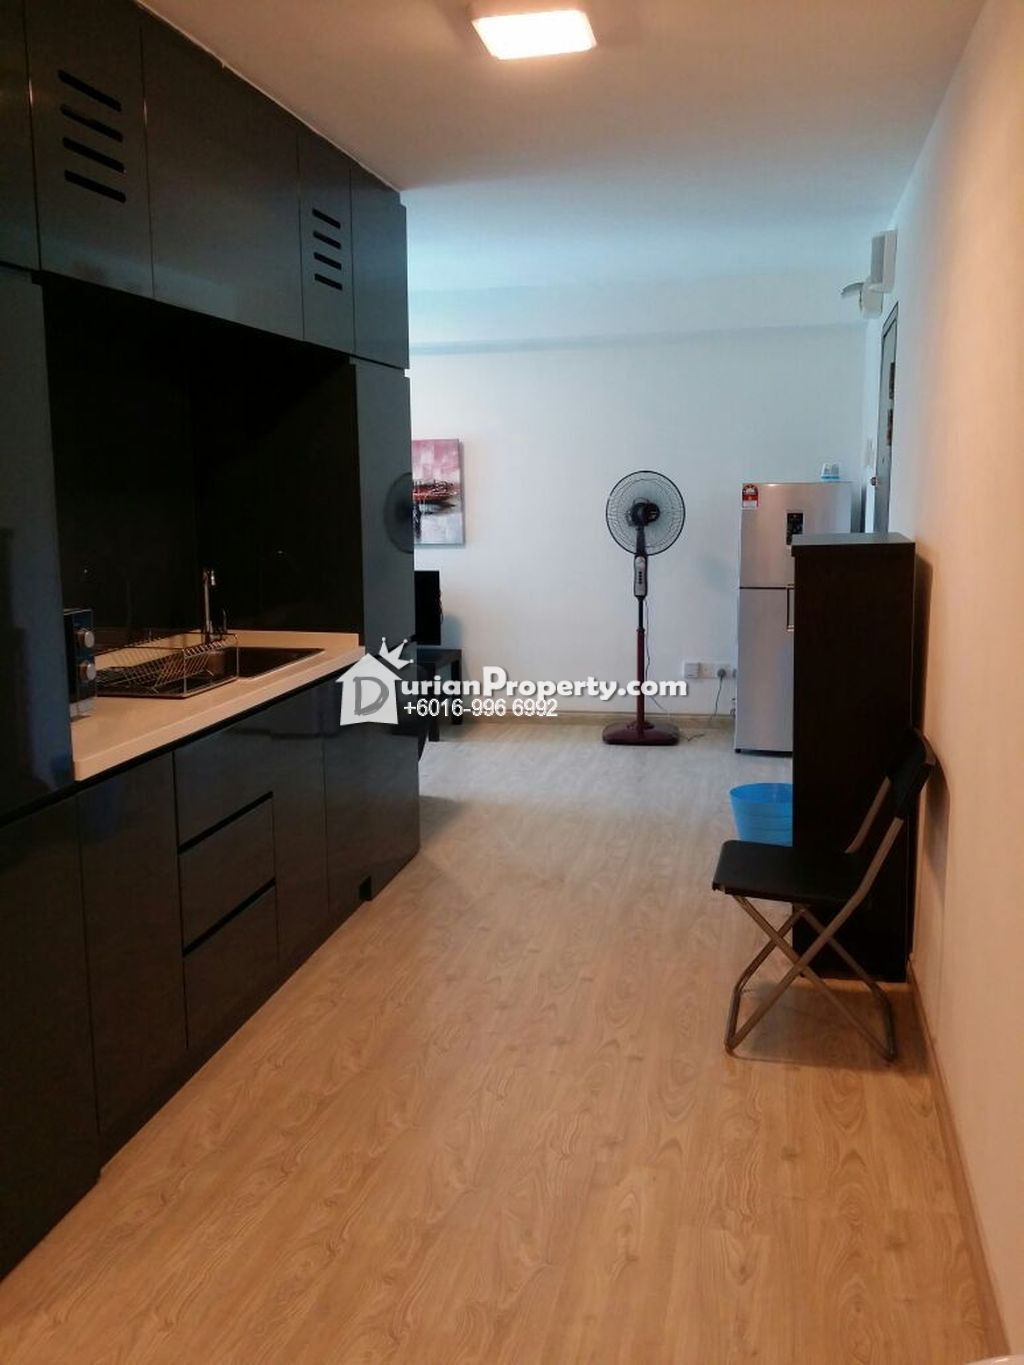 Studio Apartment Empire Damansara serviced residence for rent at empire city, damansara perdana for